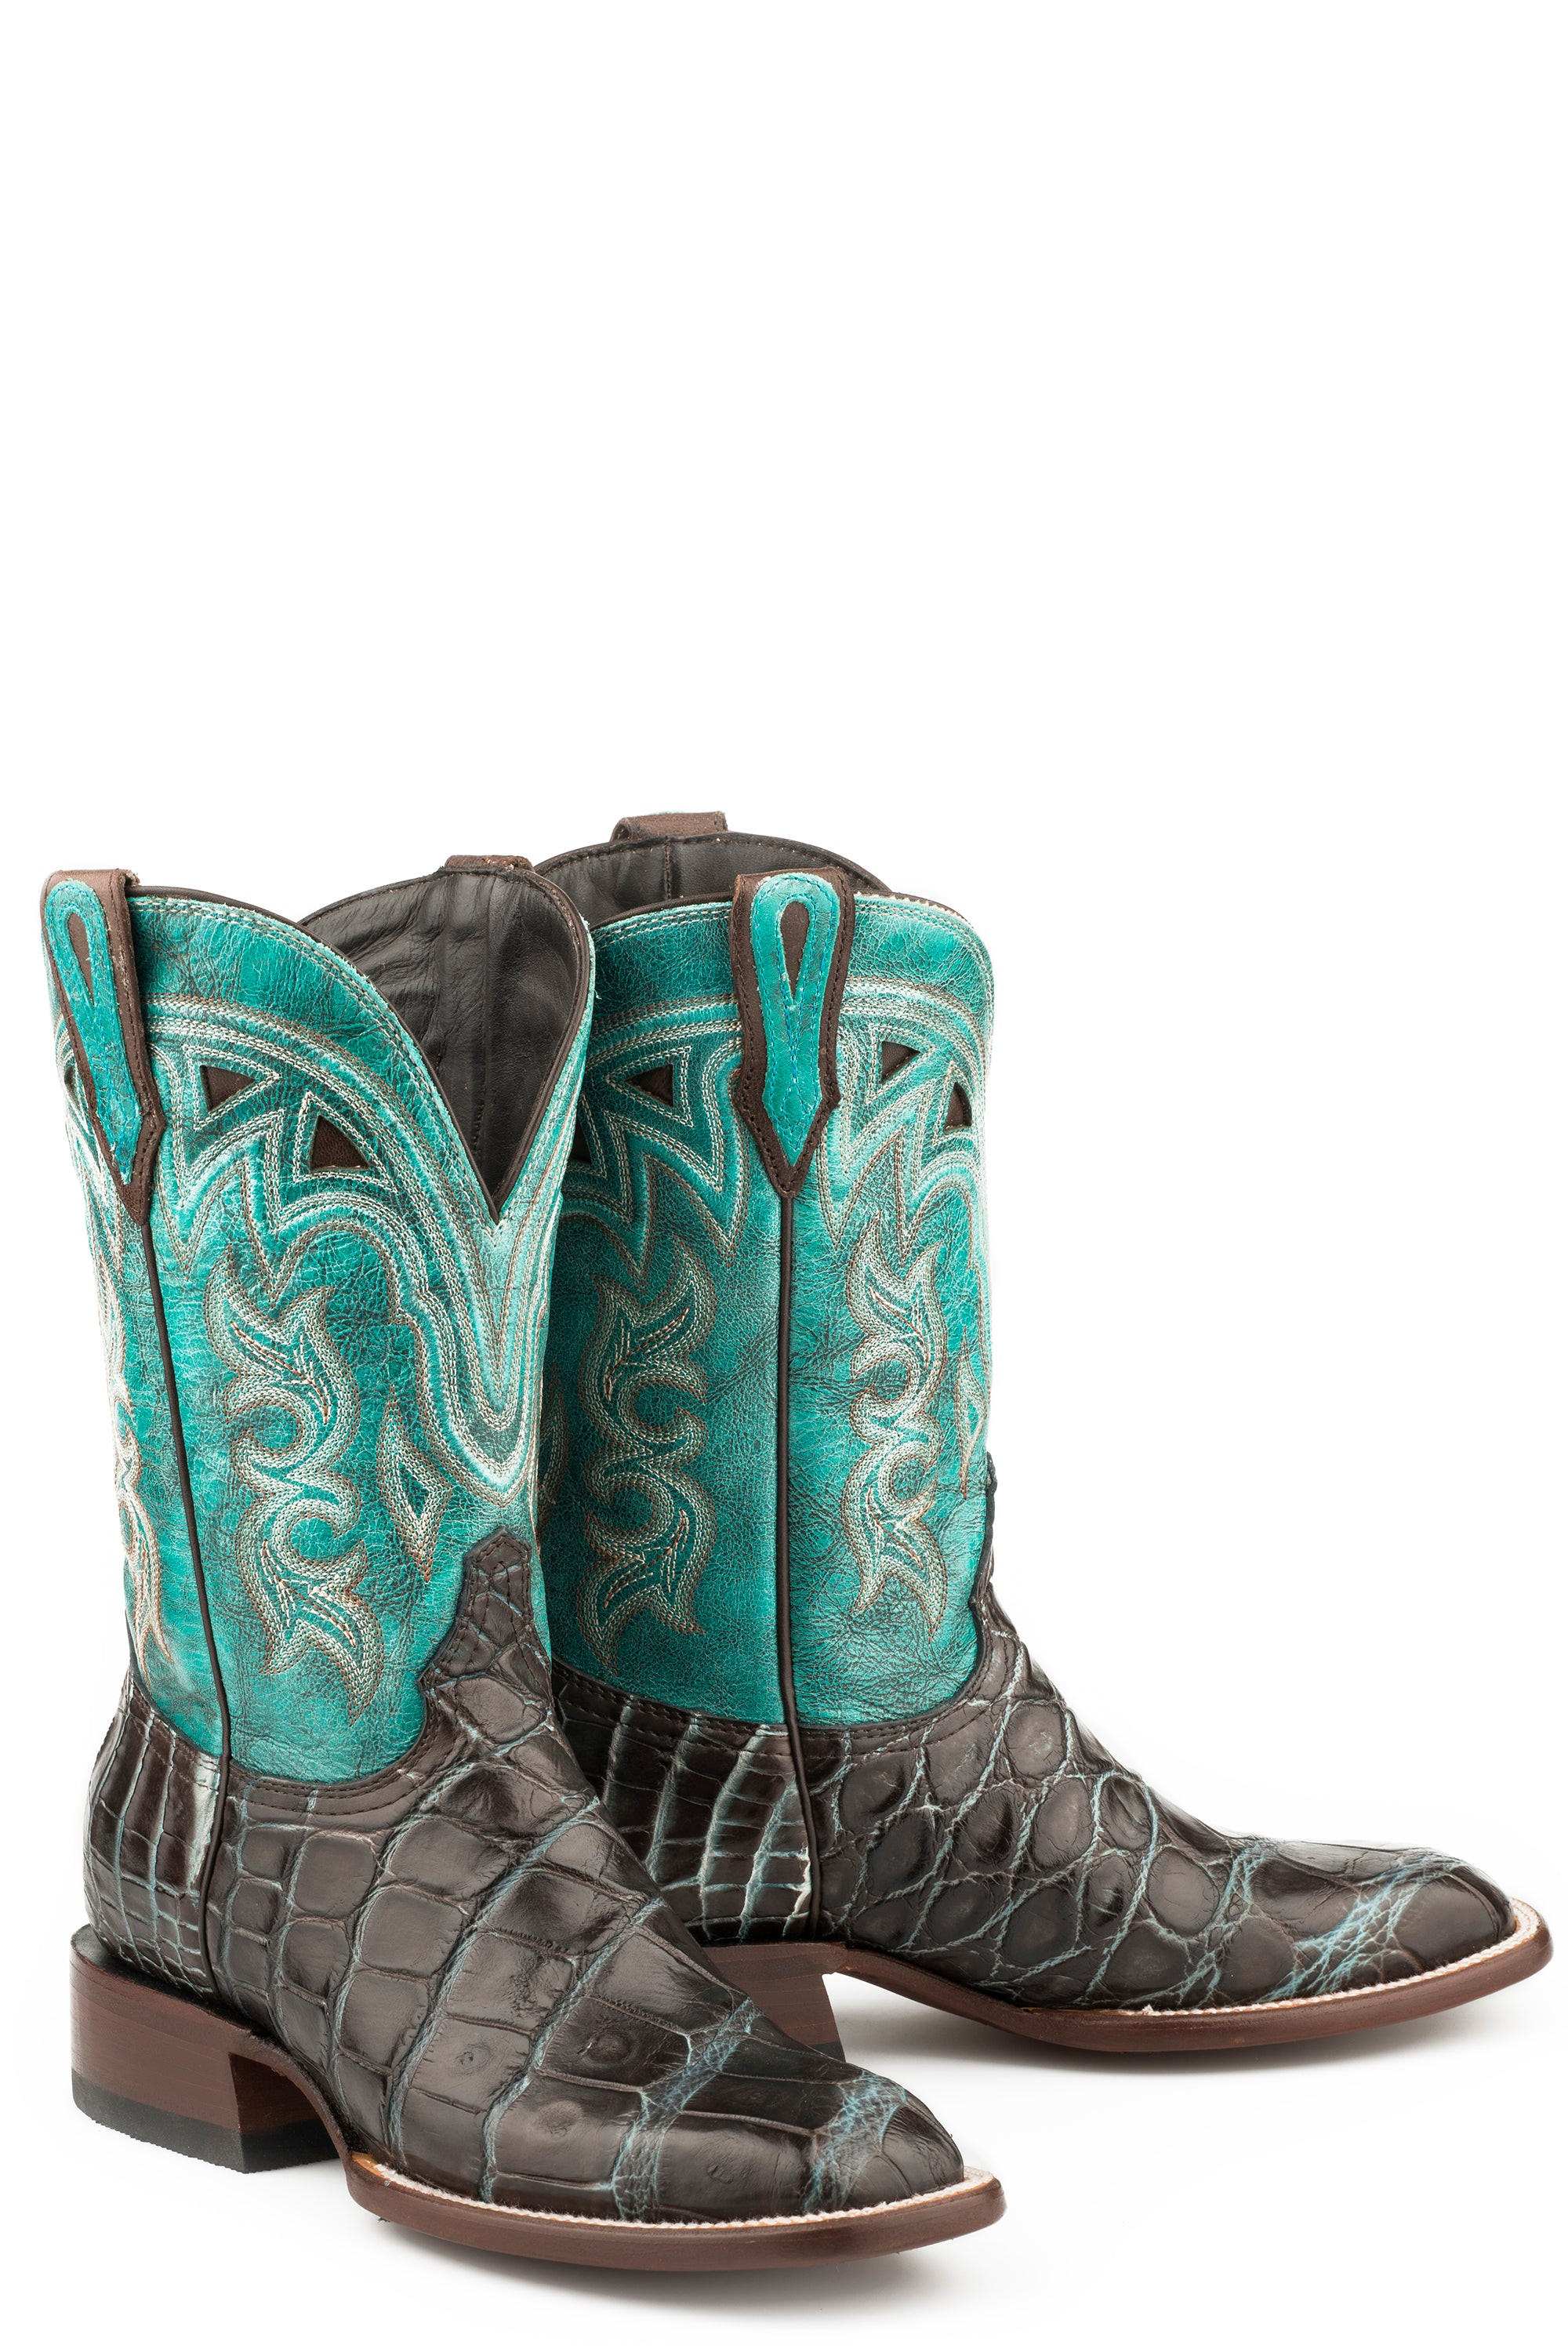 "STETSON WOMENS BROWN BROWN ALLIGATOR BLUE VAMP 11""SFT MADRID BOOTS"